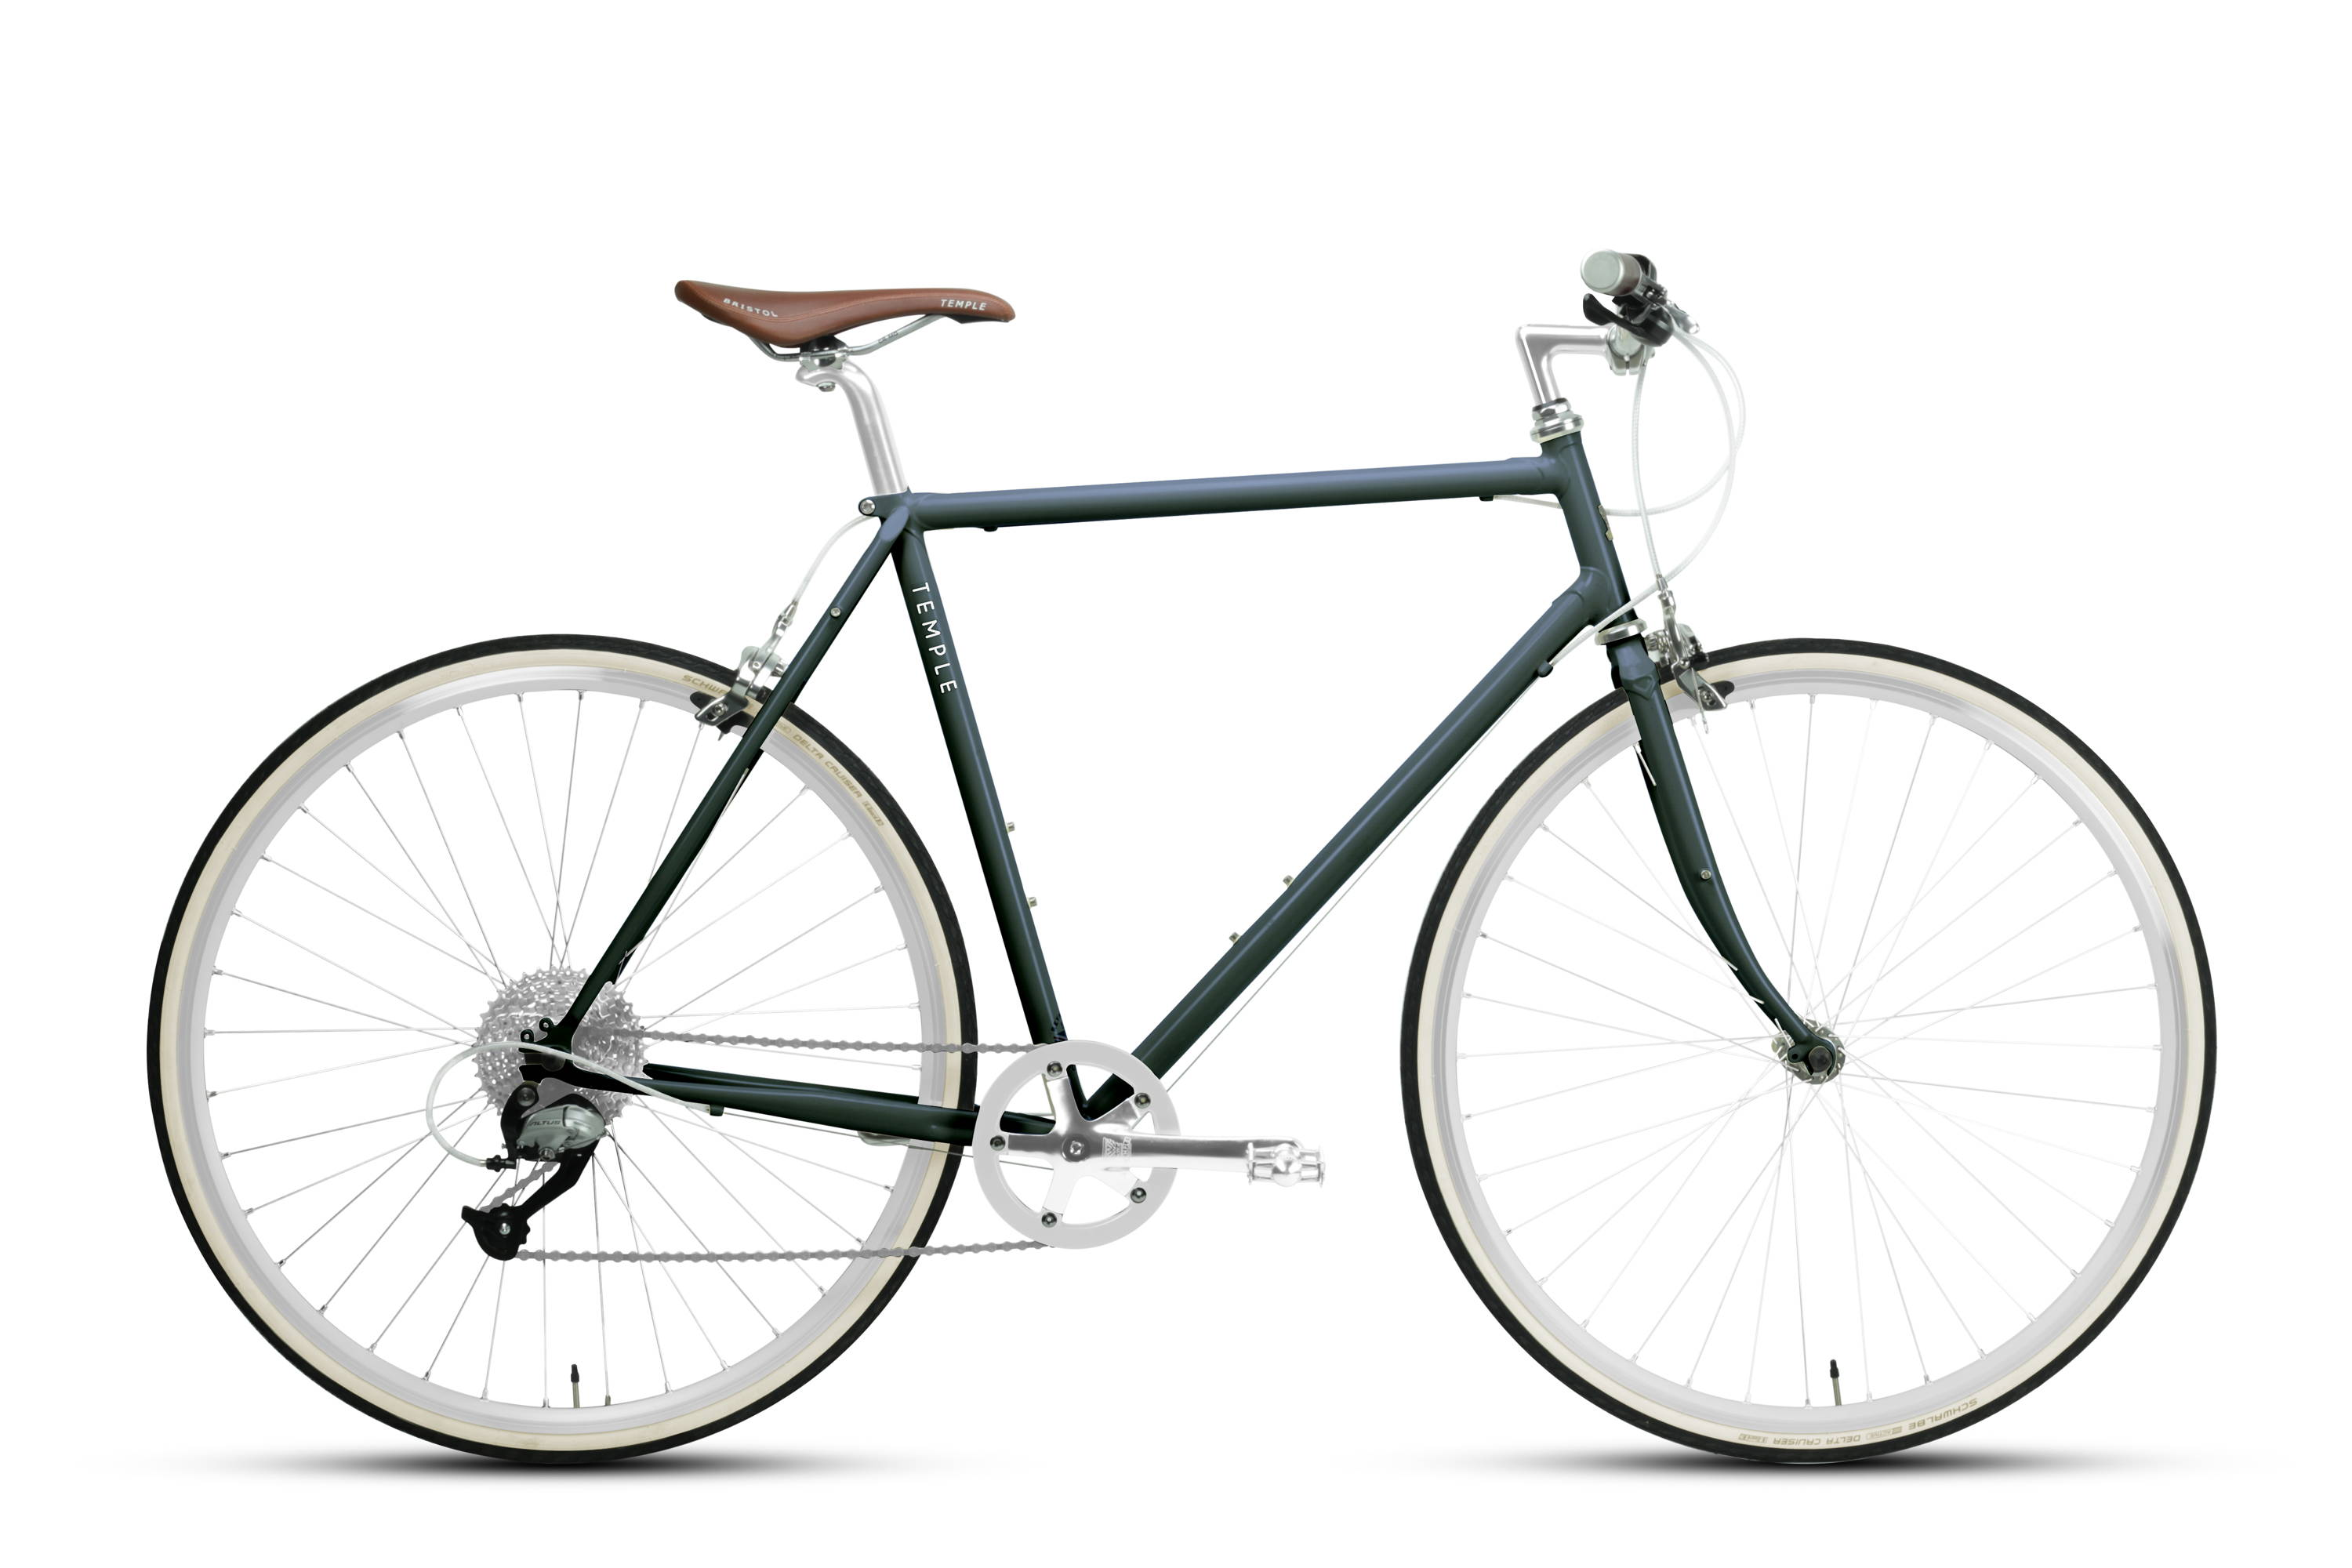 Temple Cycles - Lightweight bicycles, made to last